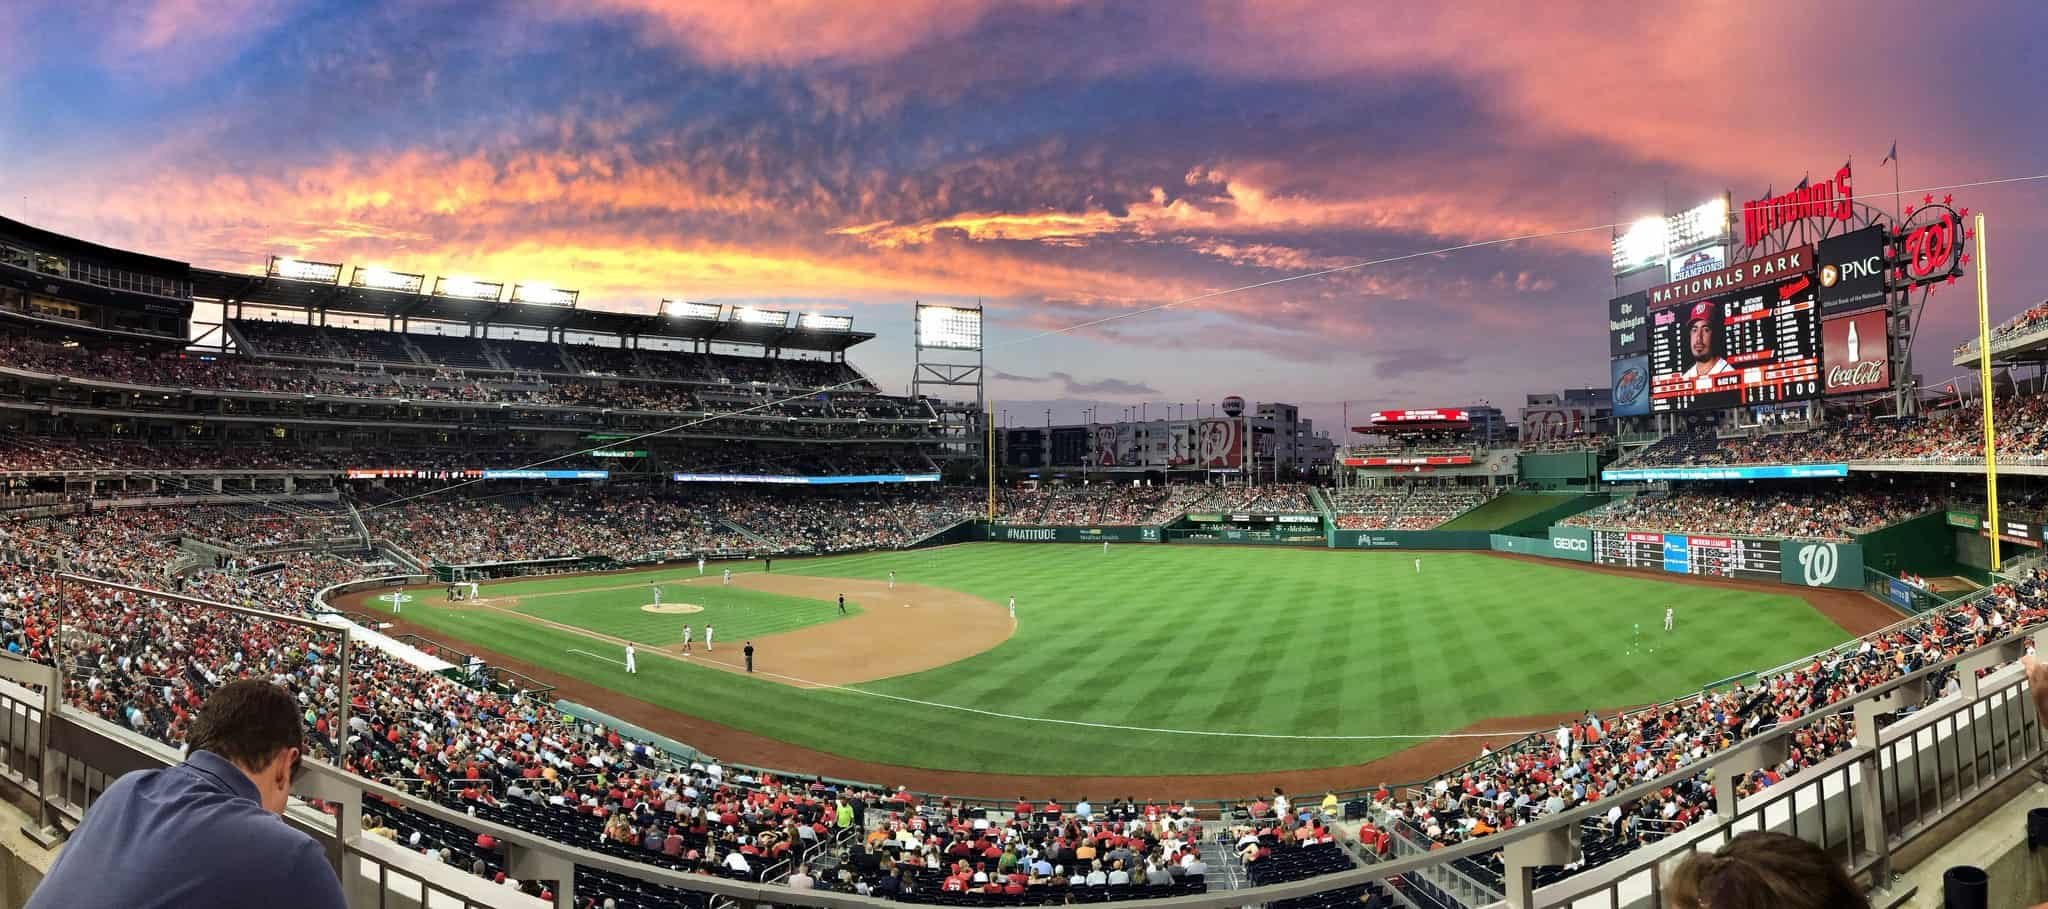 Sunset at Nationals Park